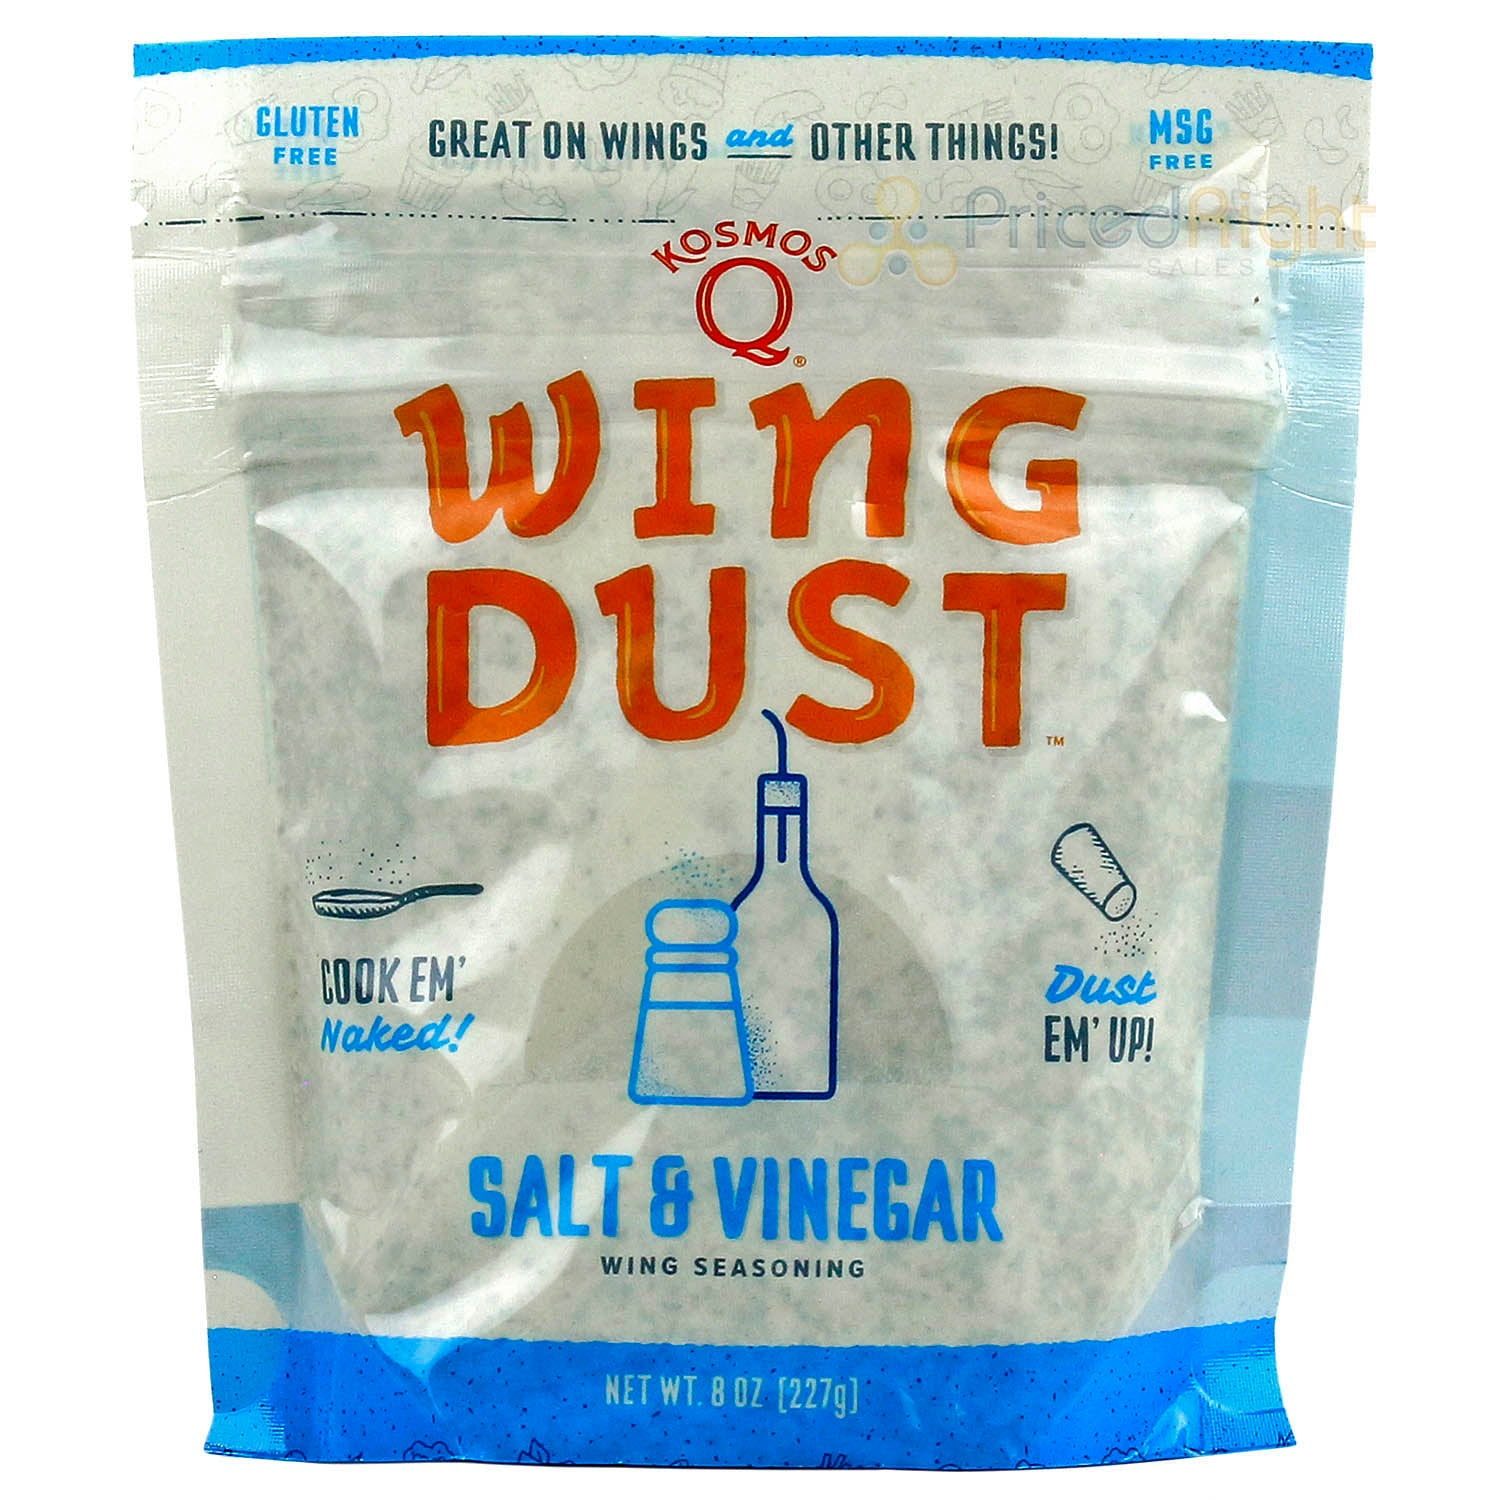 Kosmos Q Wing Dust Salt & Vinegar Dry Rub Seasoning Competition Rated Pit Master